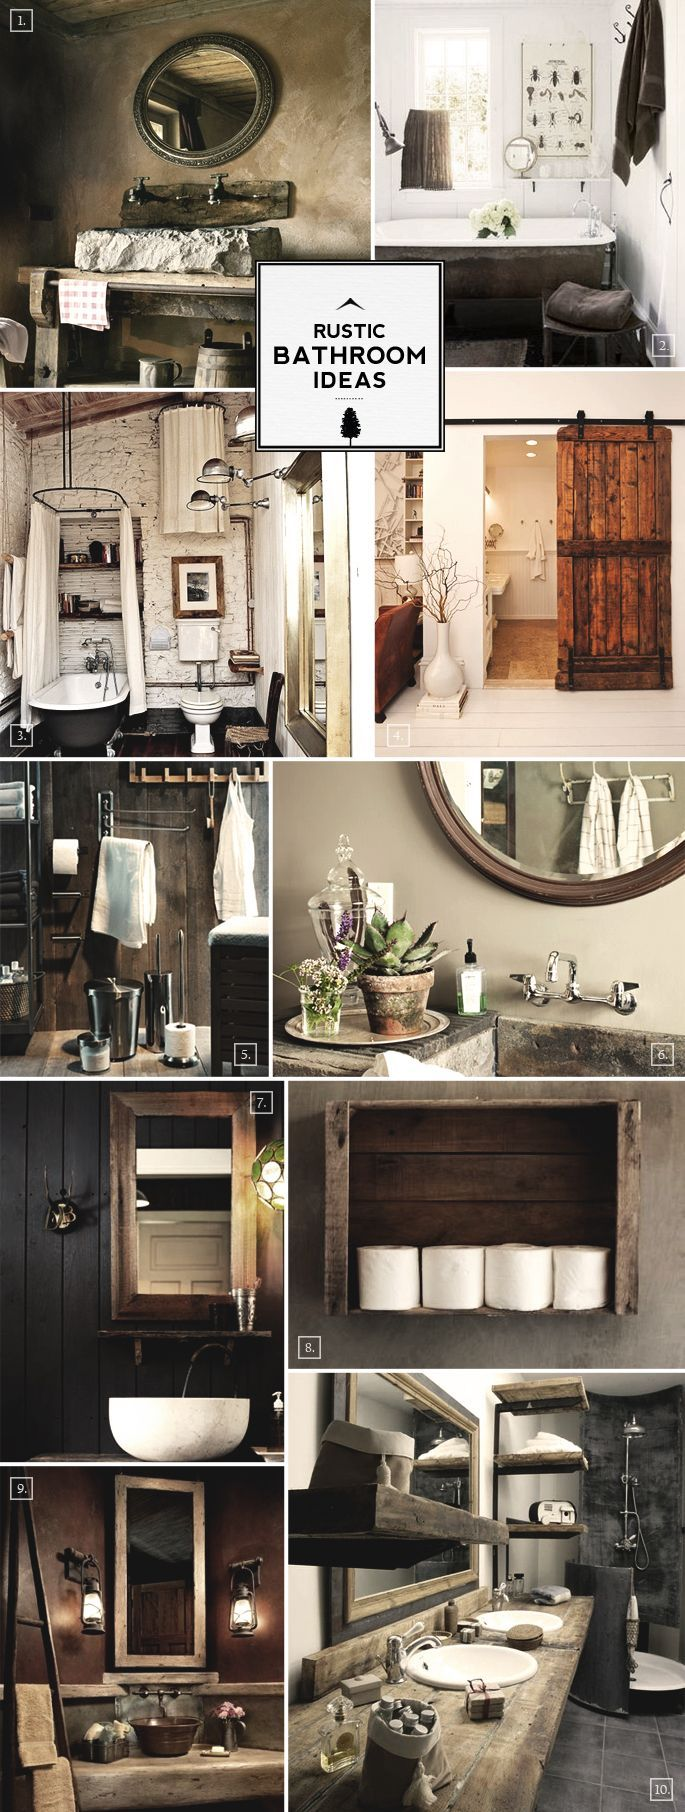 Rustic Bathroom Ideas and Decor Tips